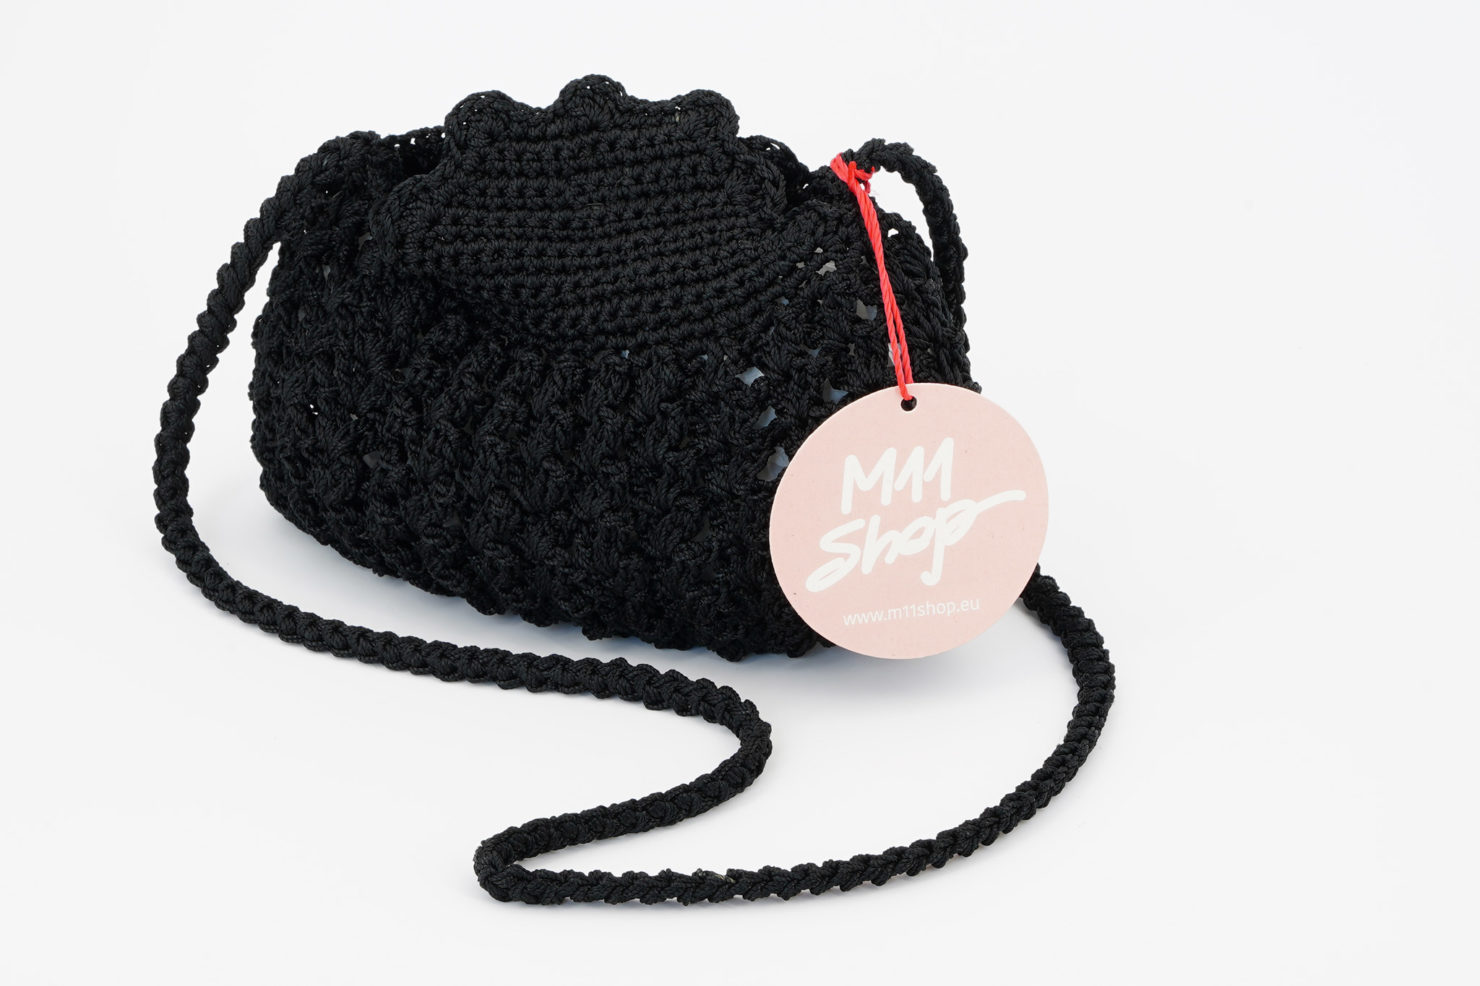 HAND MADE CROCHETED SHOULDER ROUND BAG SMALL BLACK